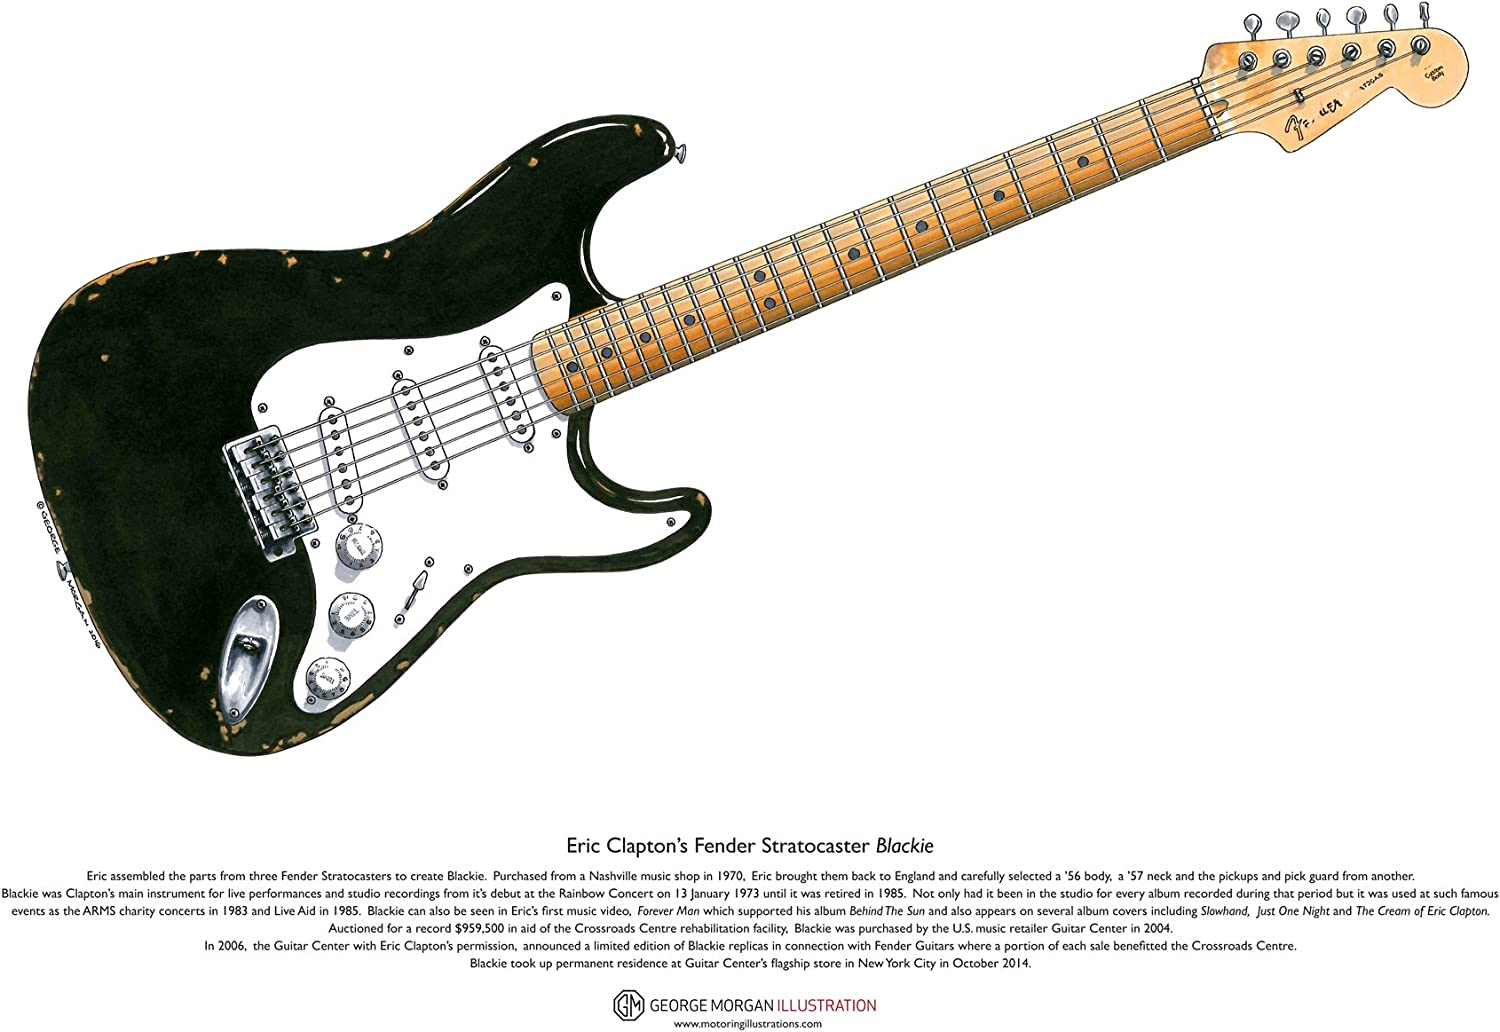 George Morgan Illustration Tamaño de Fender Stratocaster Blackie ...